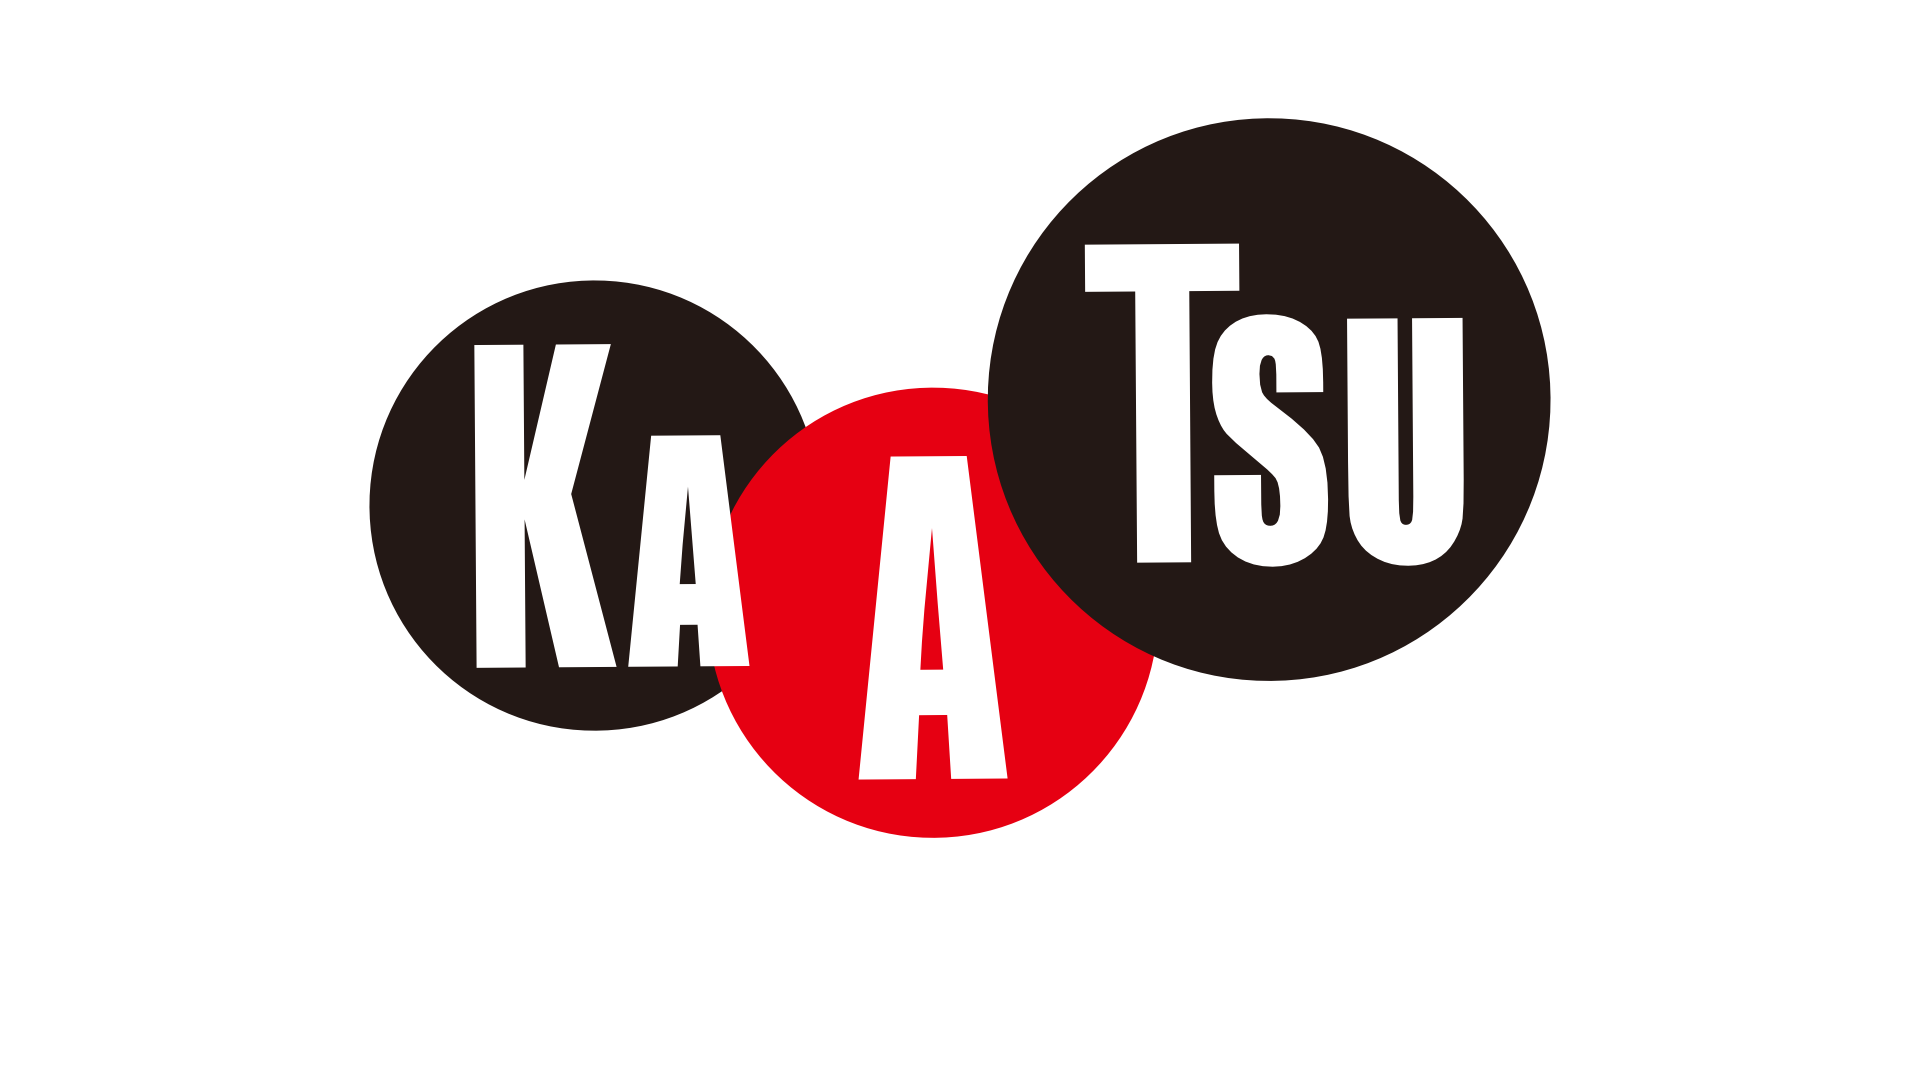 Kaatsu bfr training